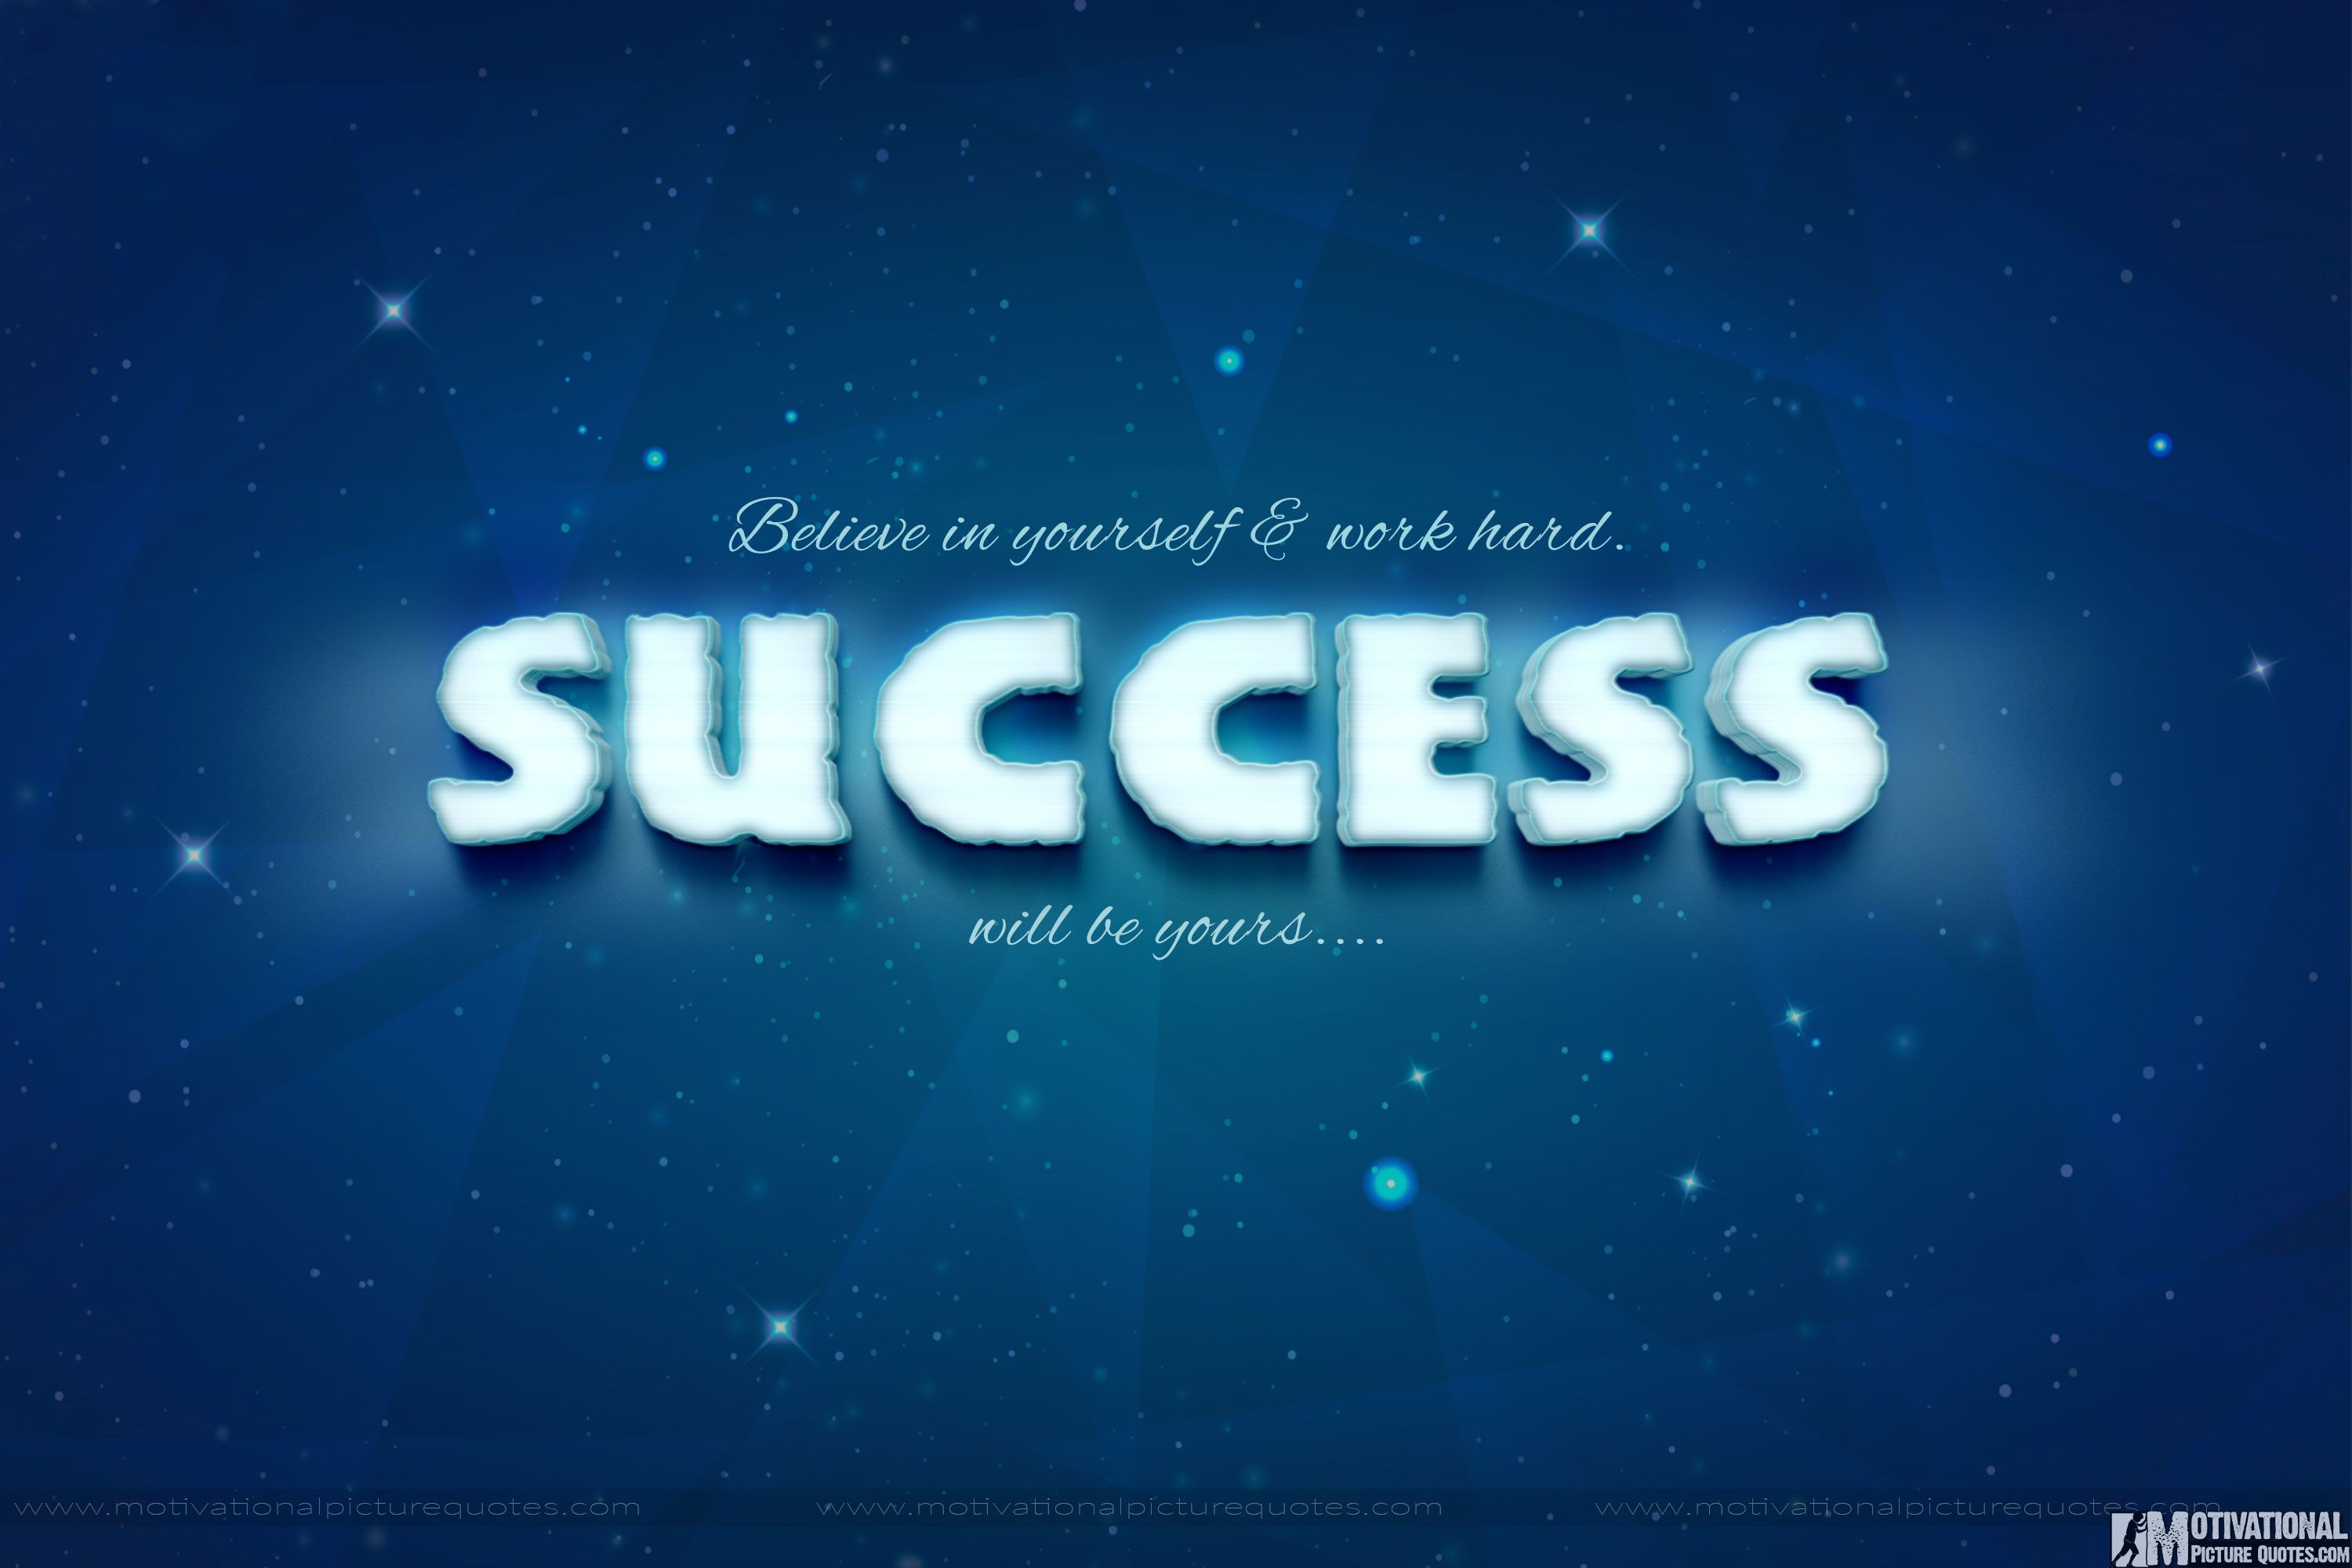 Inspirational Quotes For Life And Success